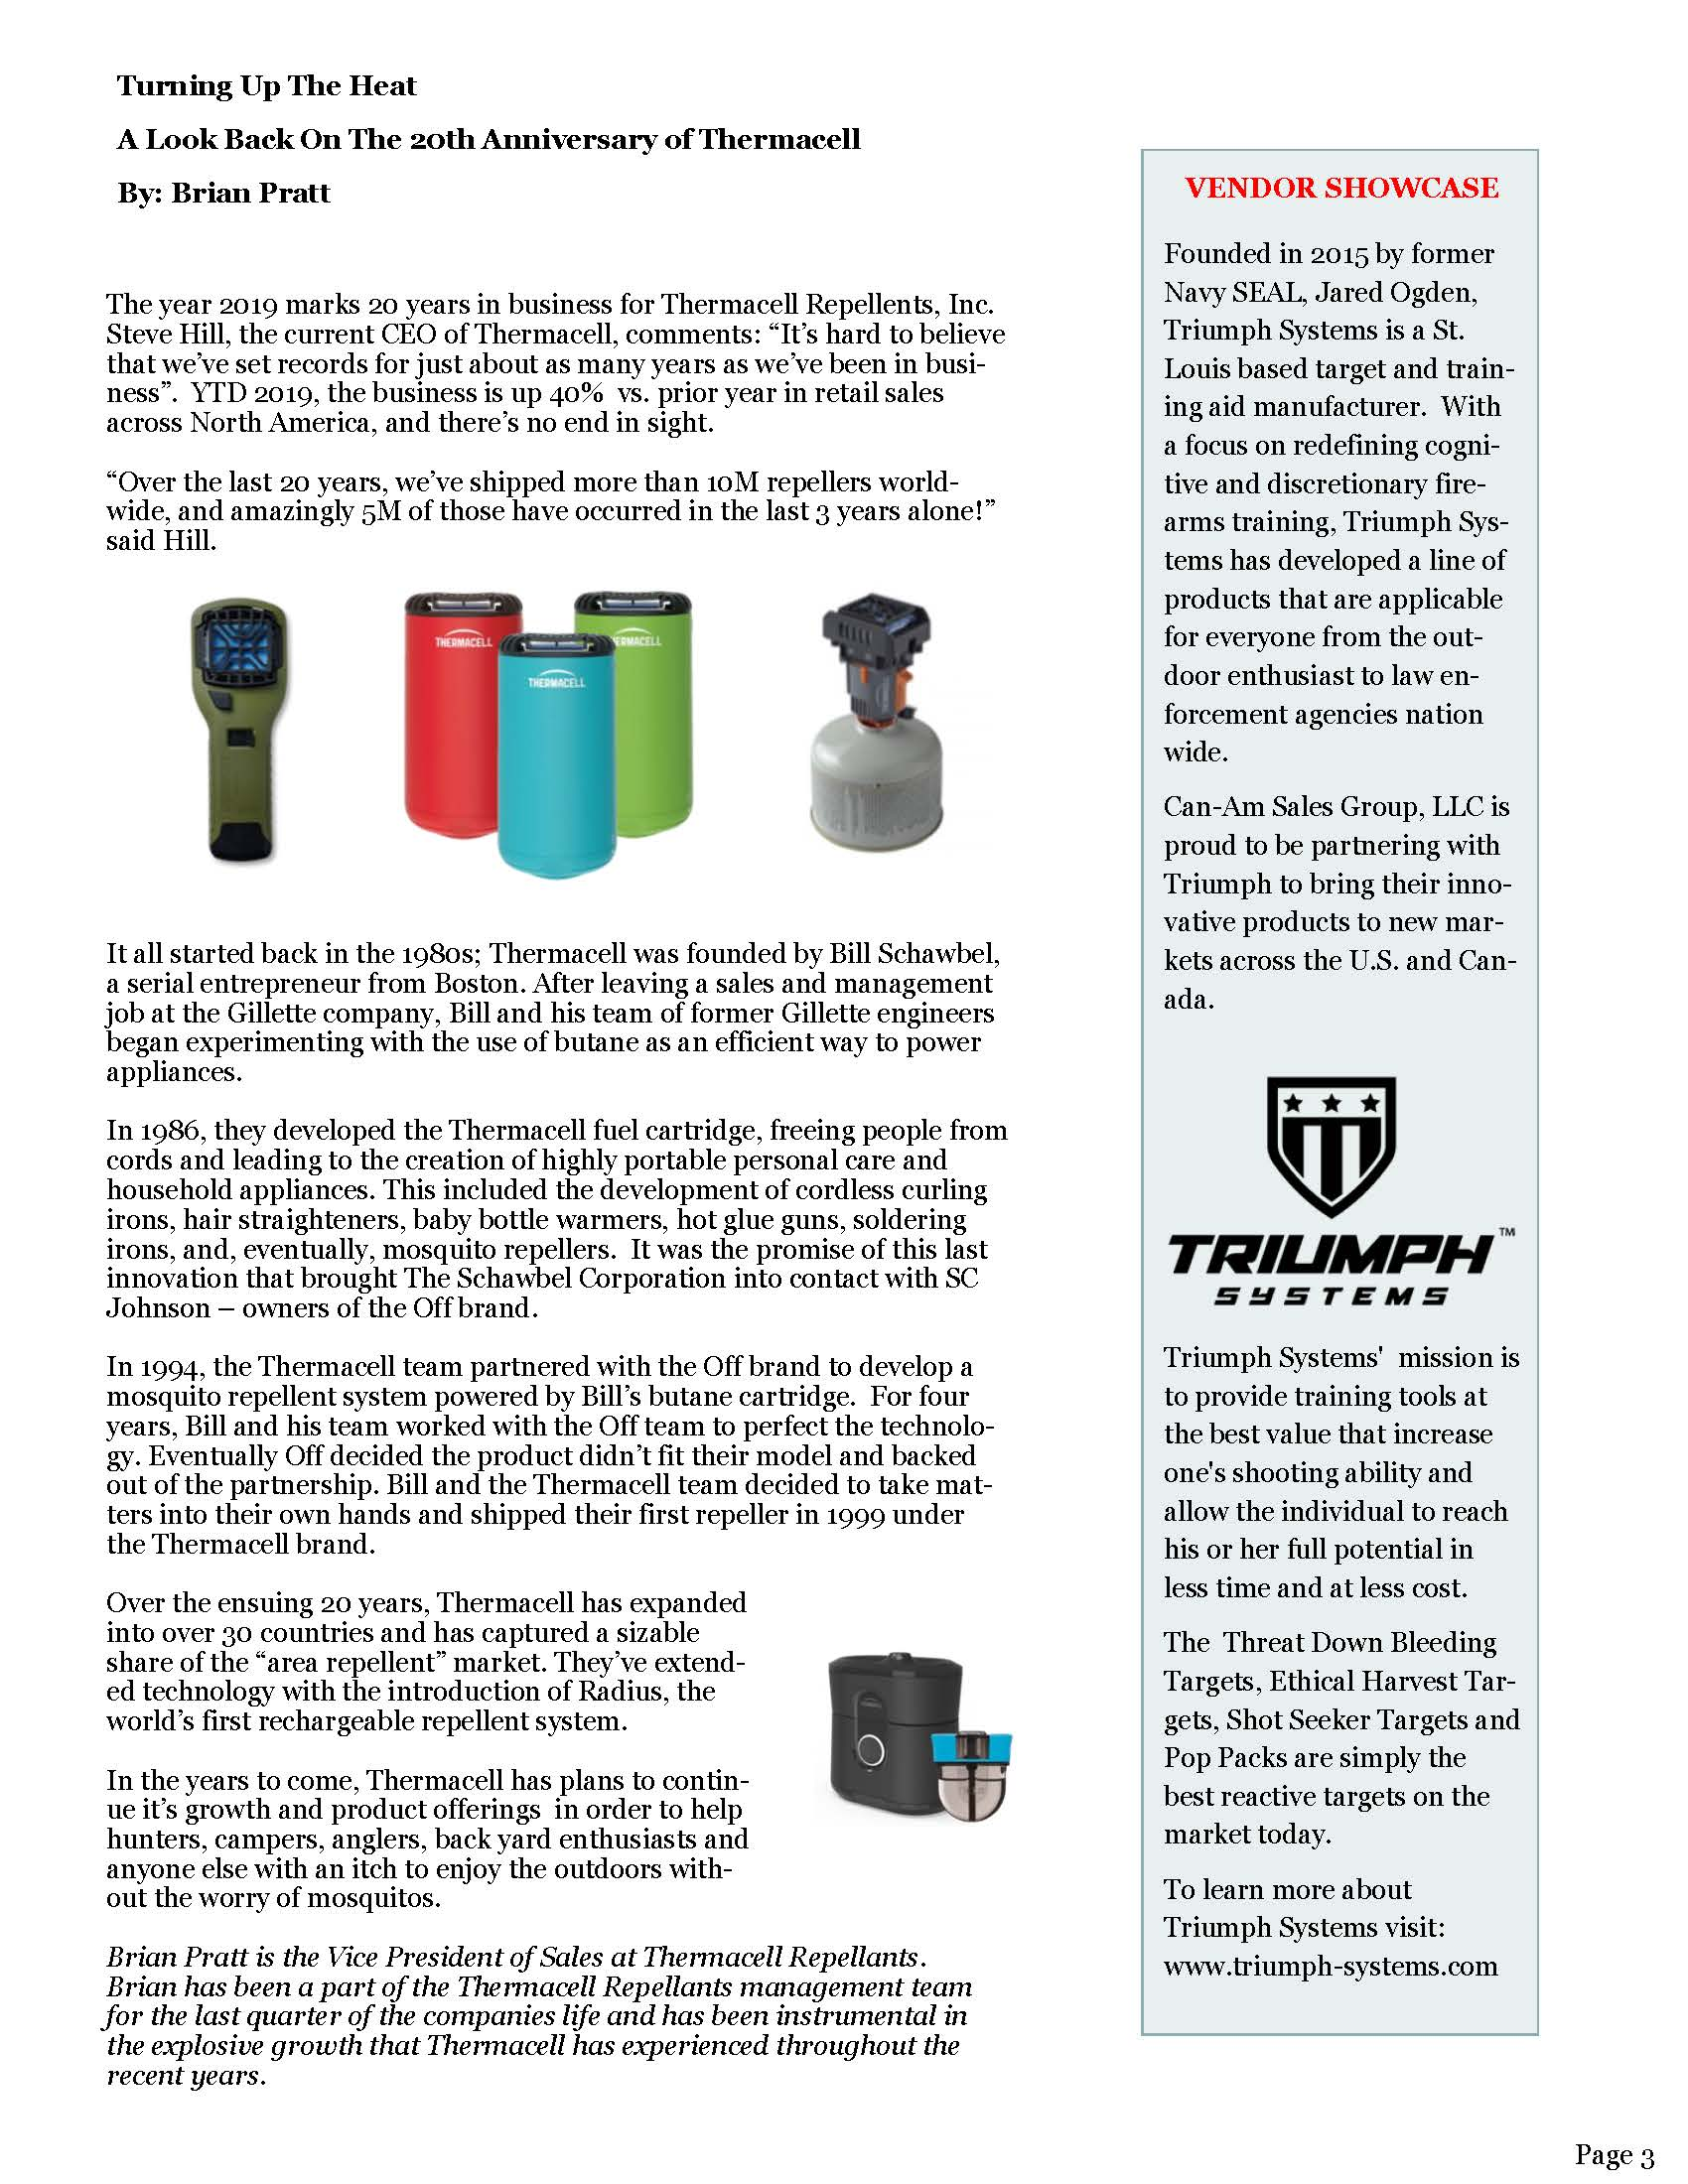 Can-Am Sales Group Newsletter Vol2-3-page 3